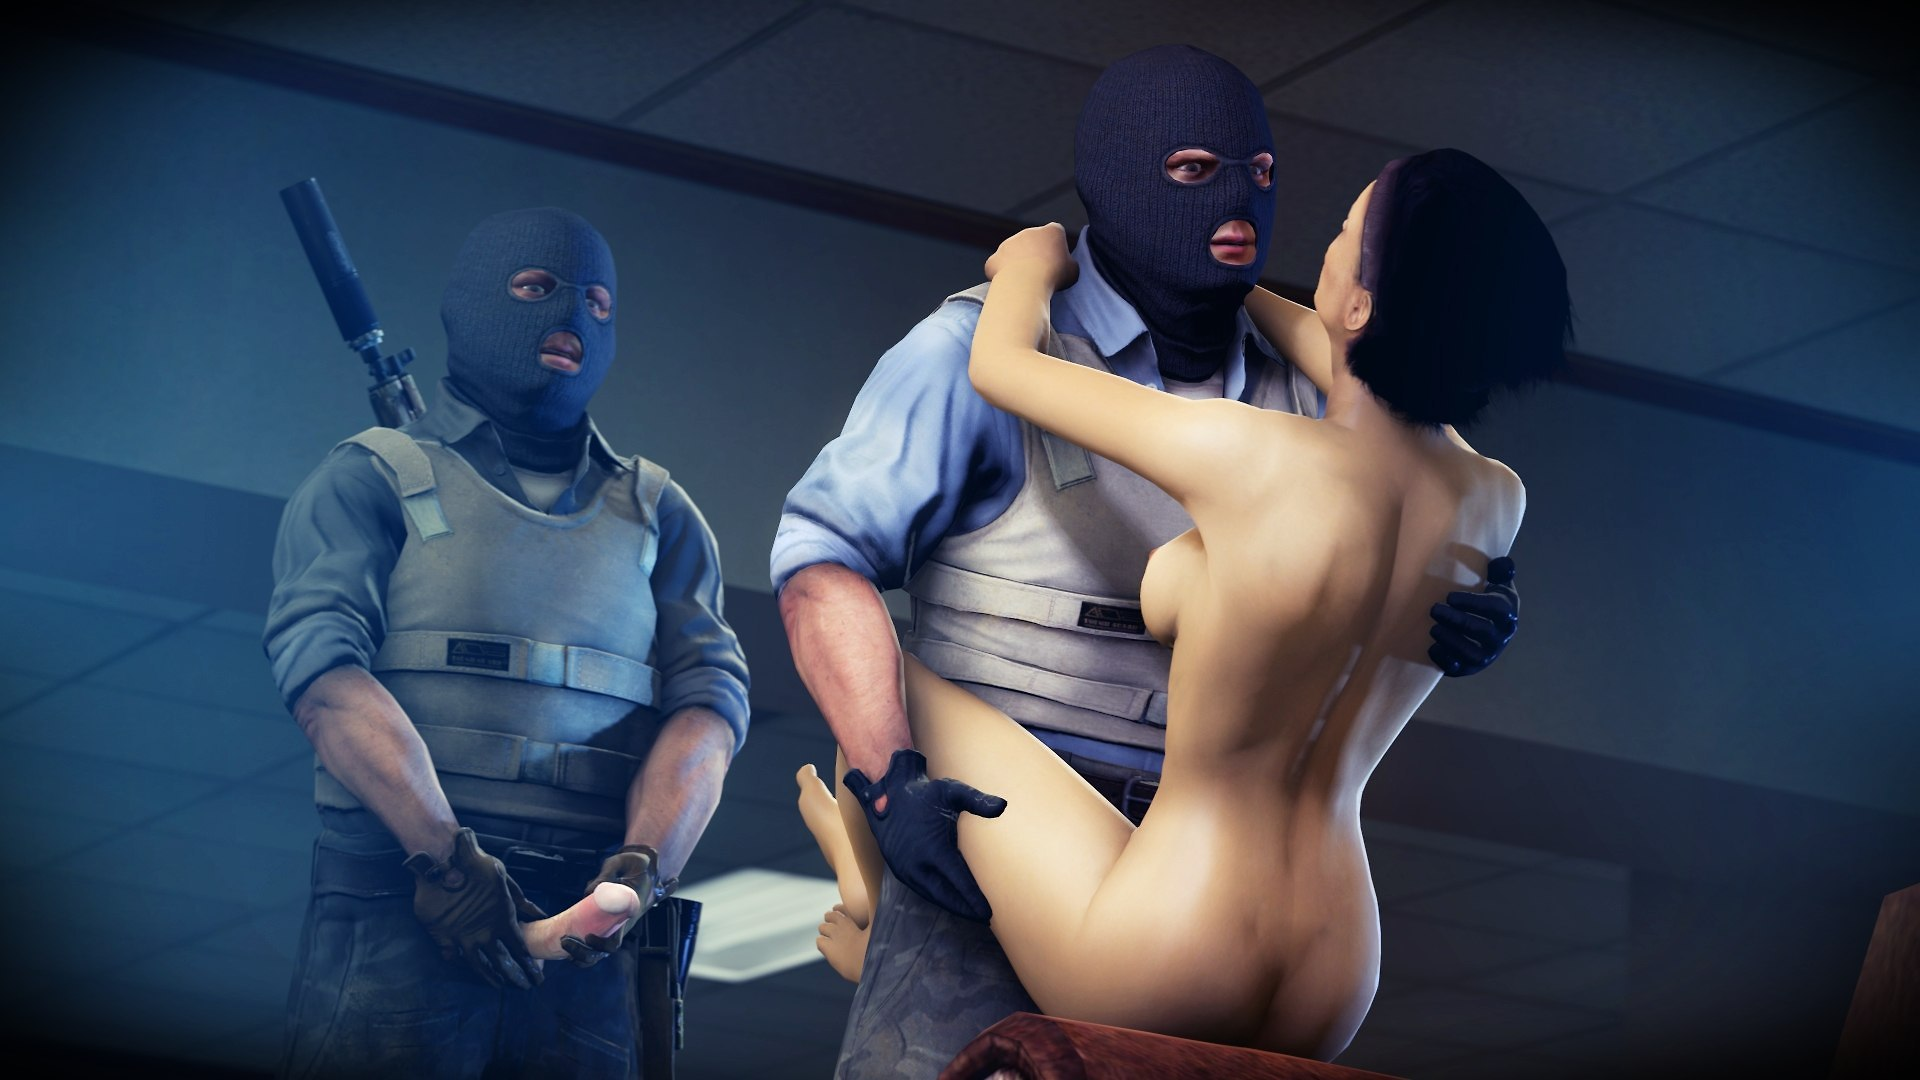 Counter strike hentai exploited streaming